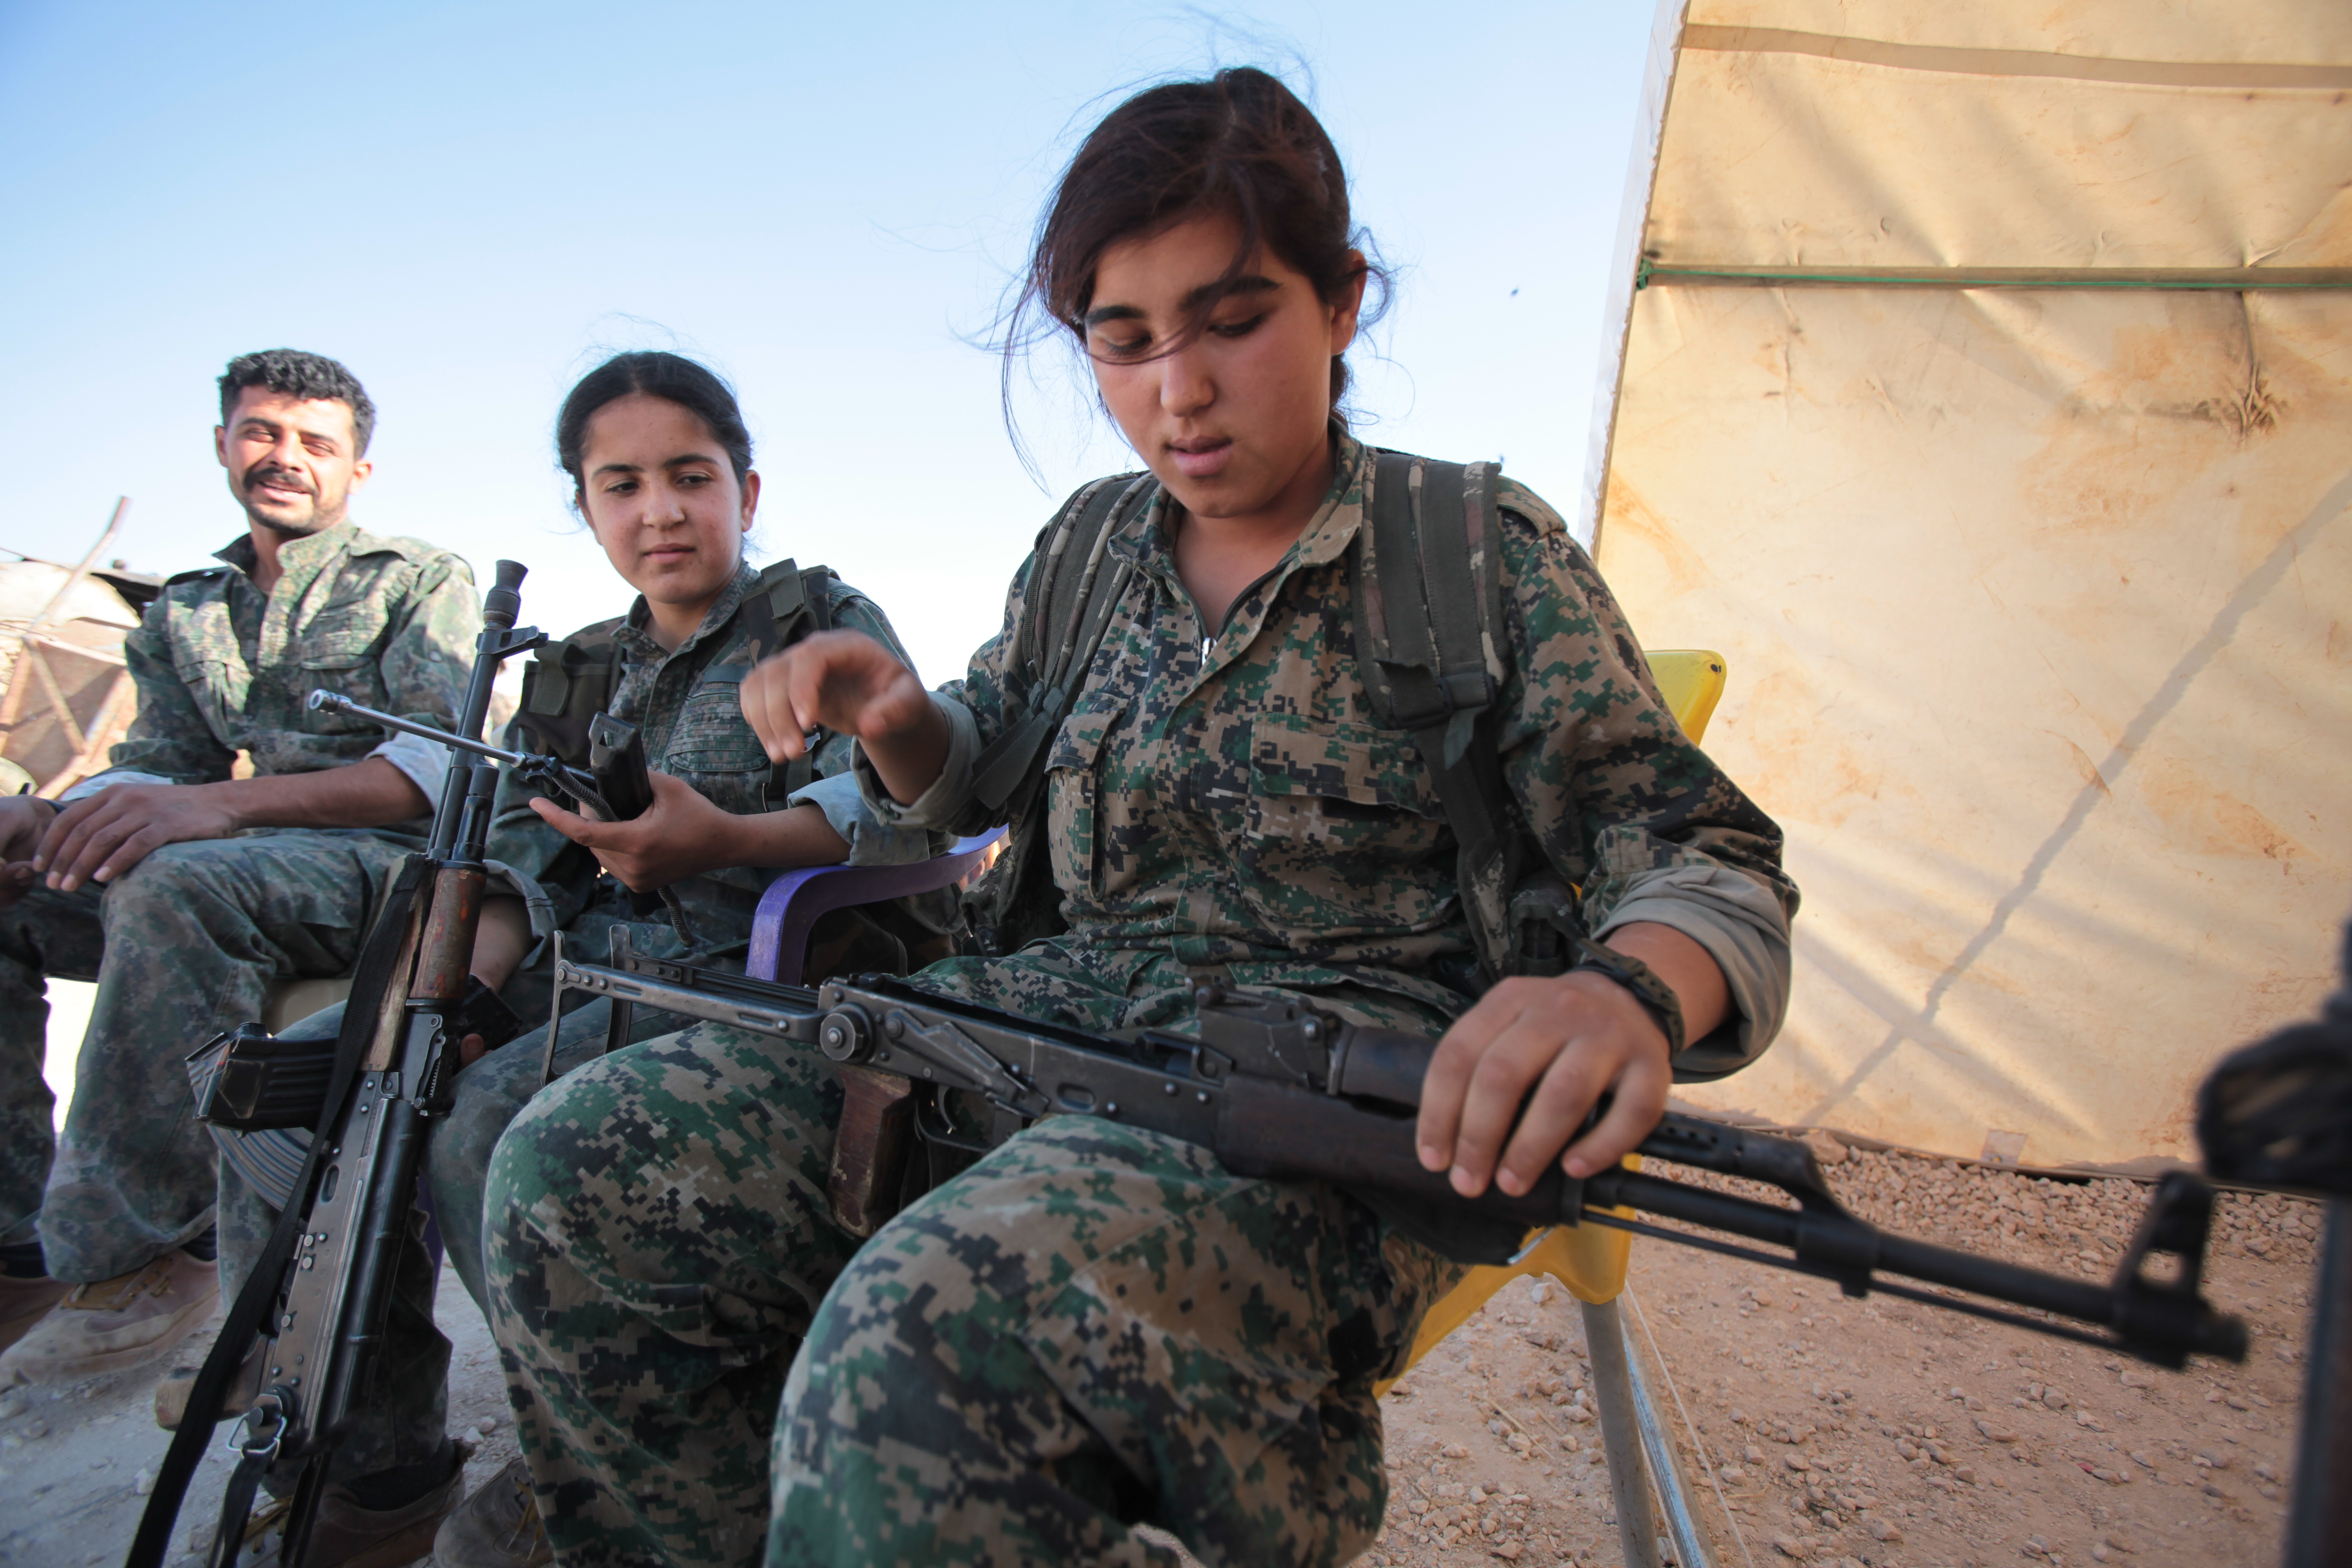 A Kurdish People's Protection Units, or YPG's woman fighter controls her AK-47 in a camp at the outskirts of the destroyed Syrian town of Kobane, also known as Ain al-Arab, Syria.